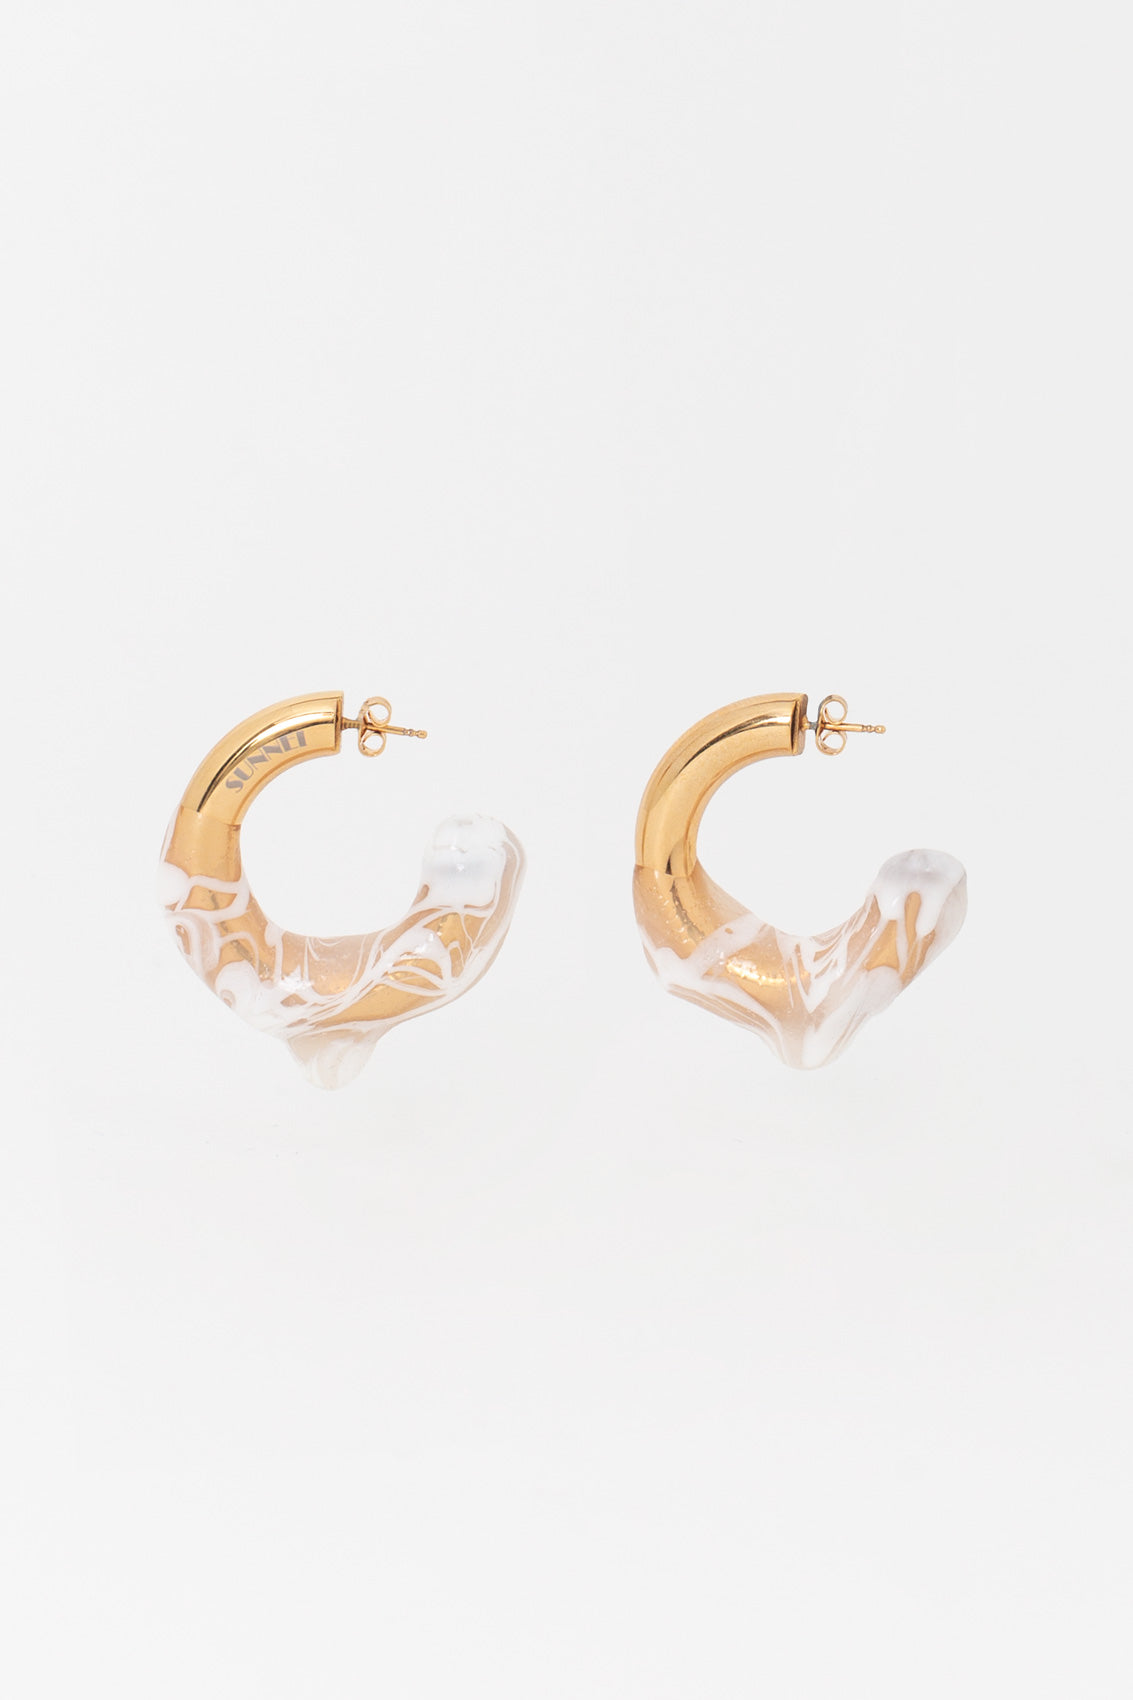 SEE-THROUGH WHITE RUBBERIZED GOLD EARRINGS